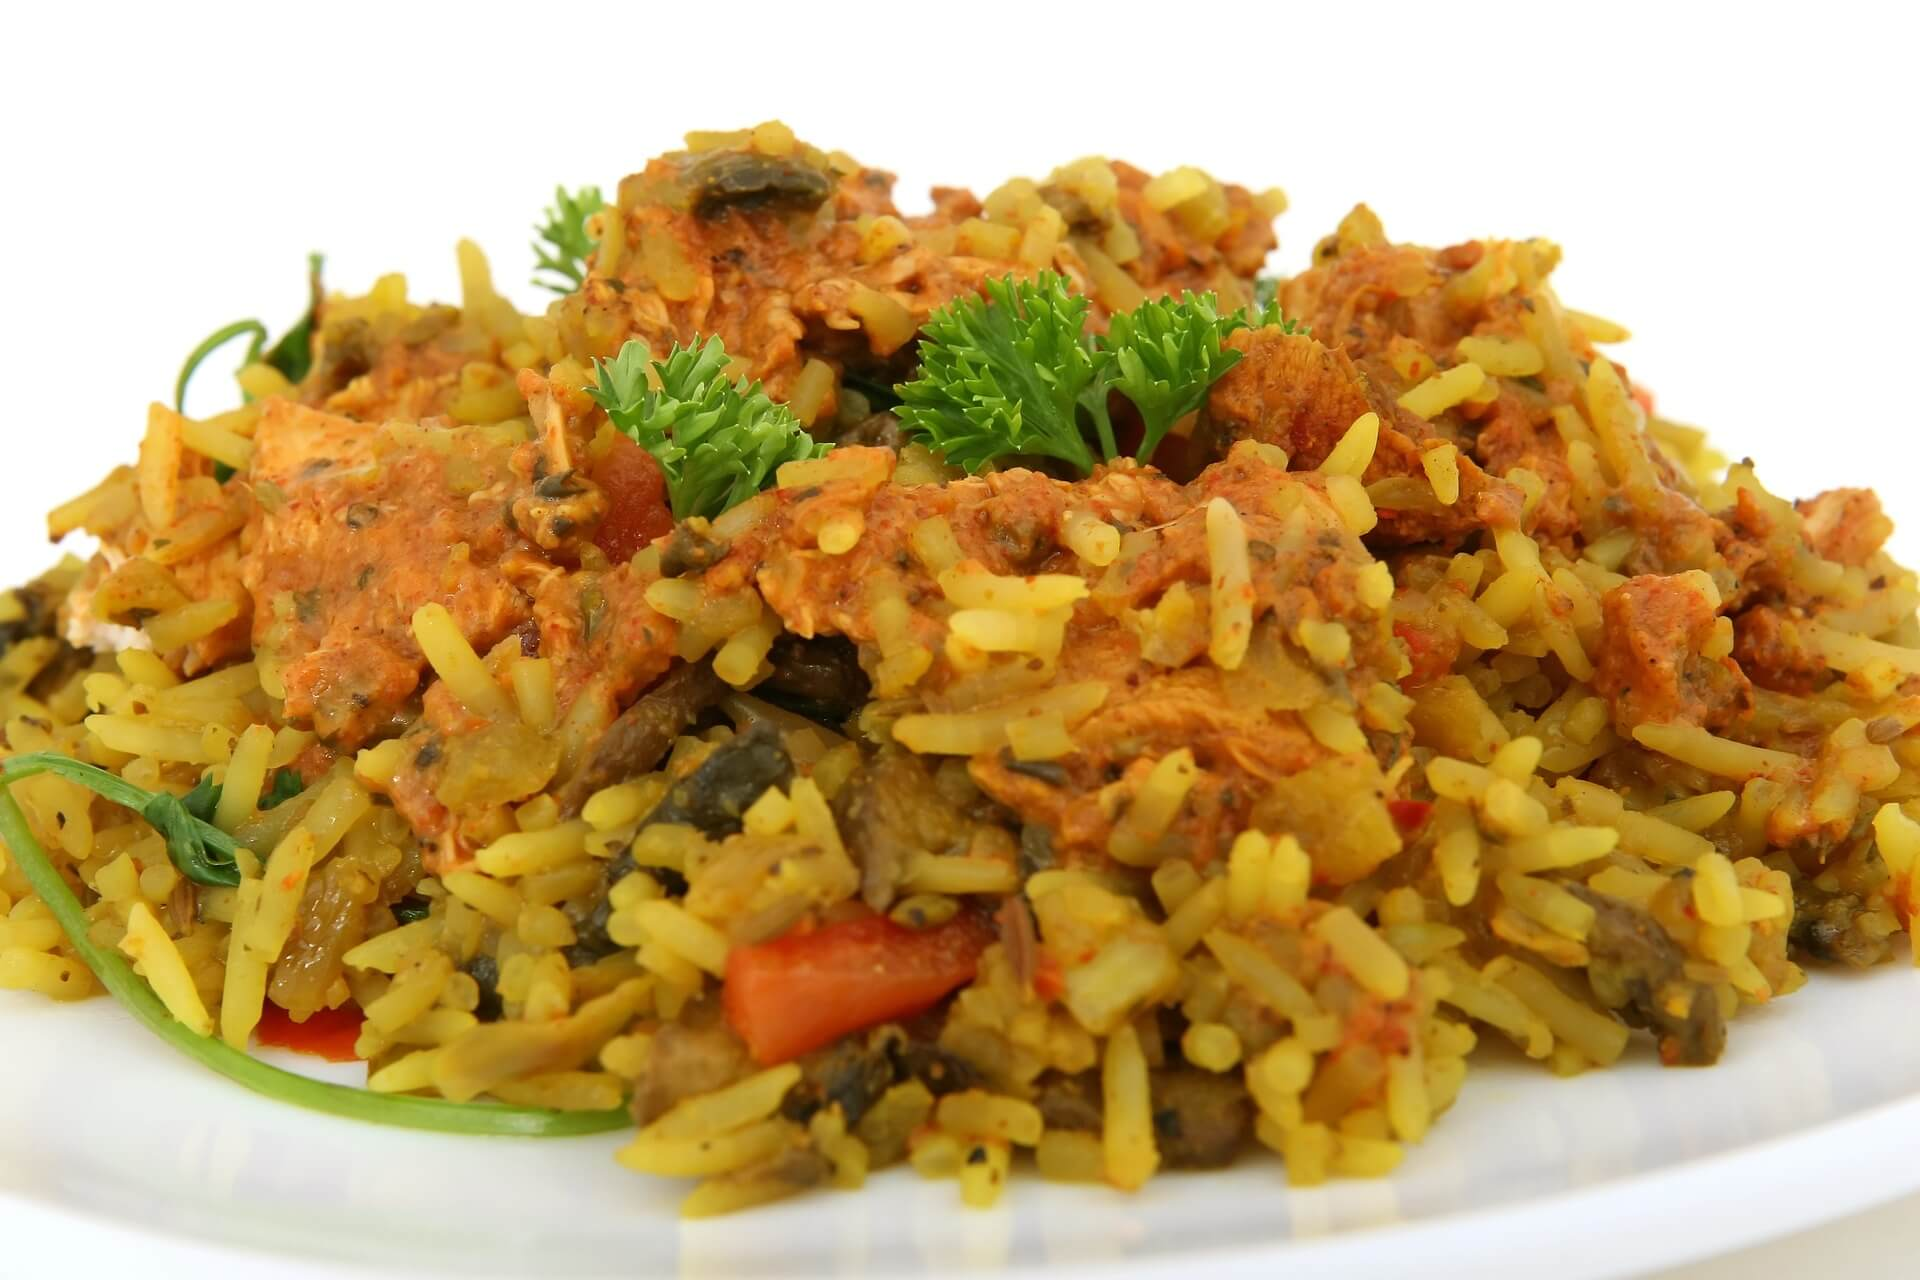 Arroz con codornices